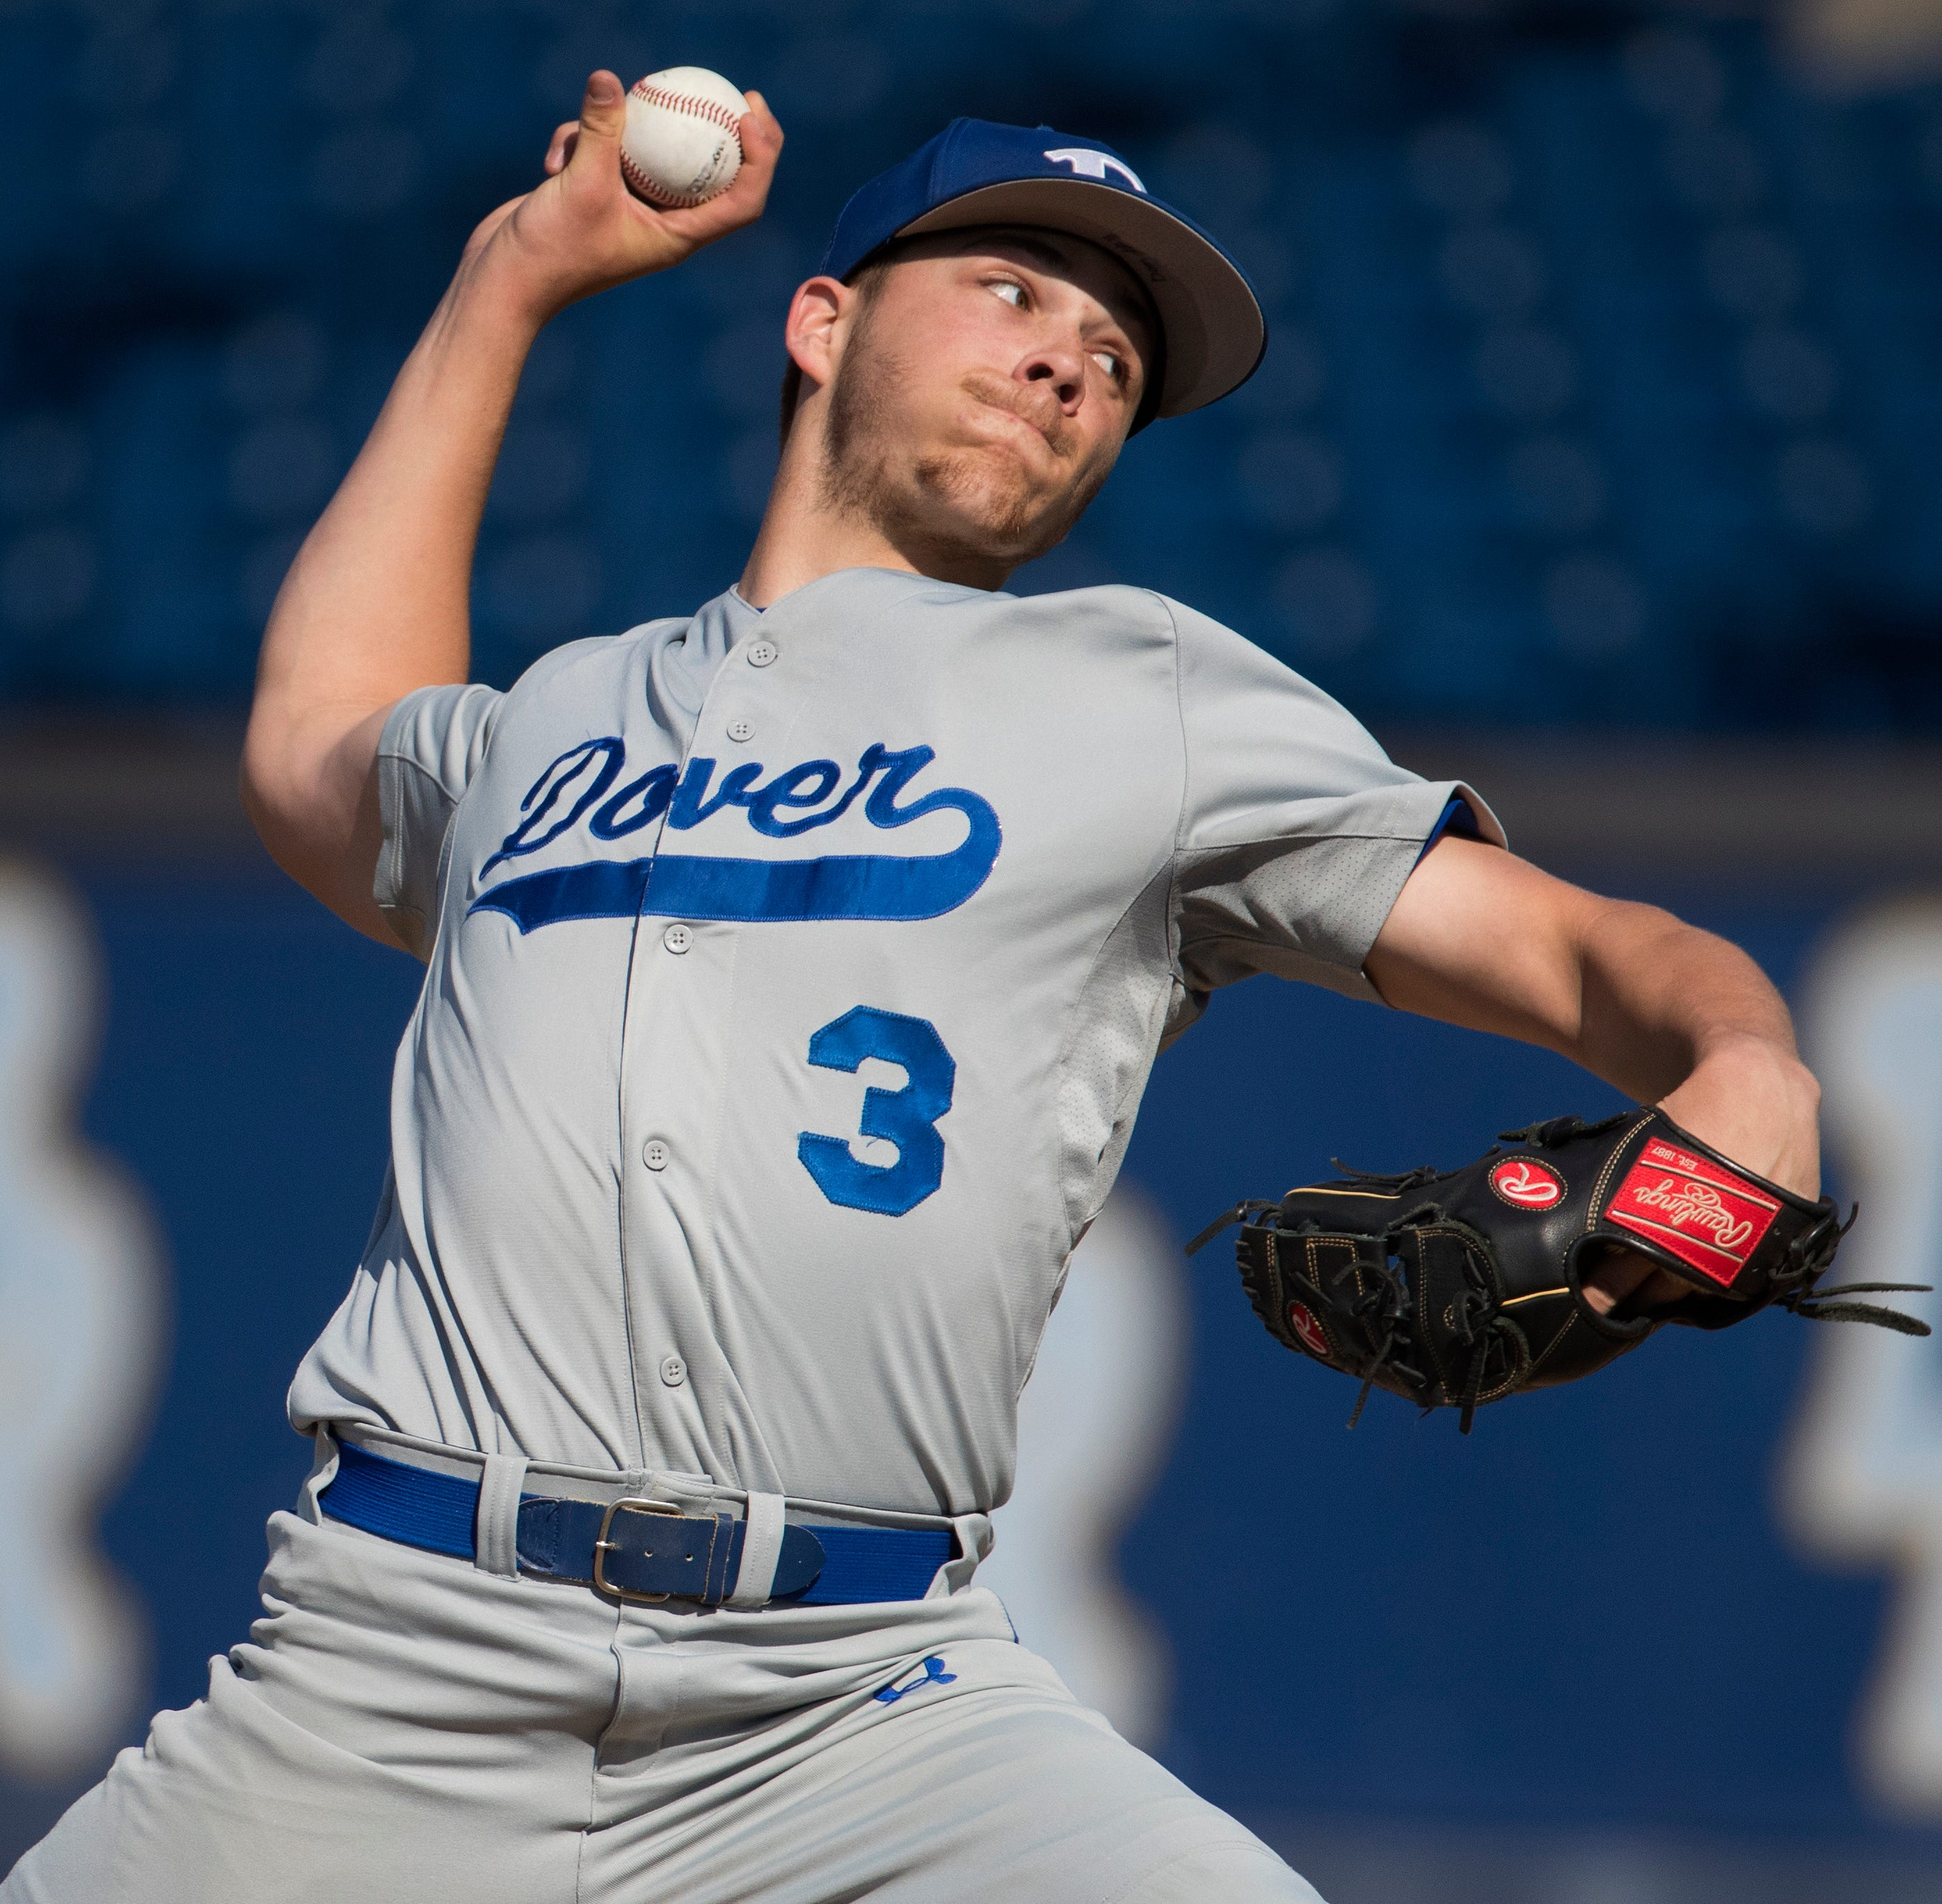 Top players to watch in Delaware high school baseball